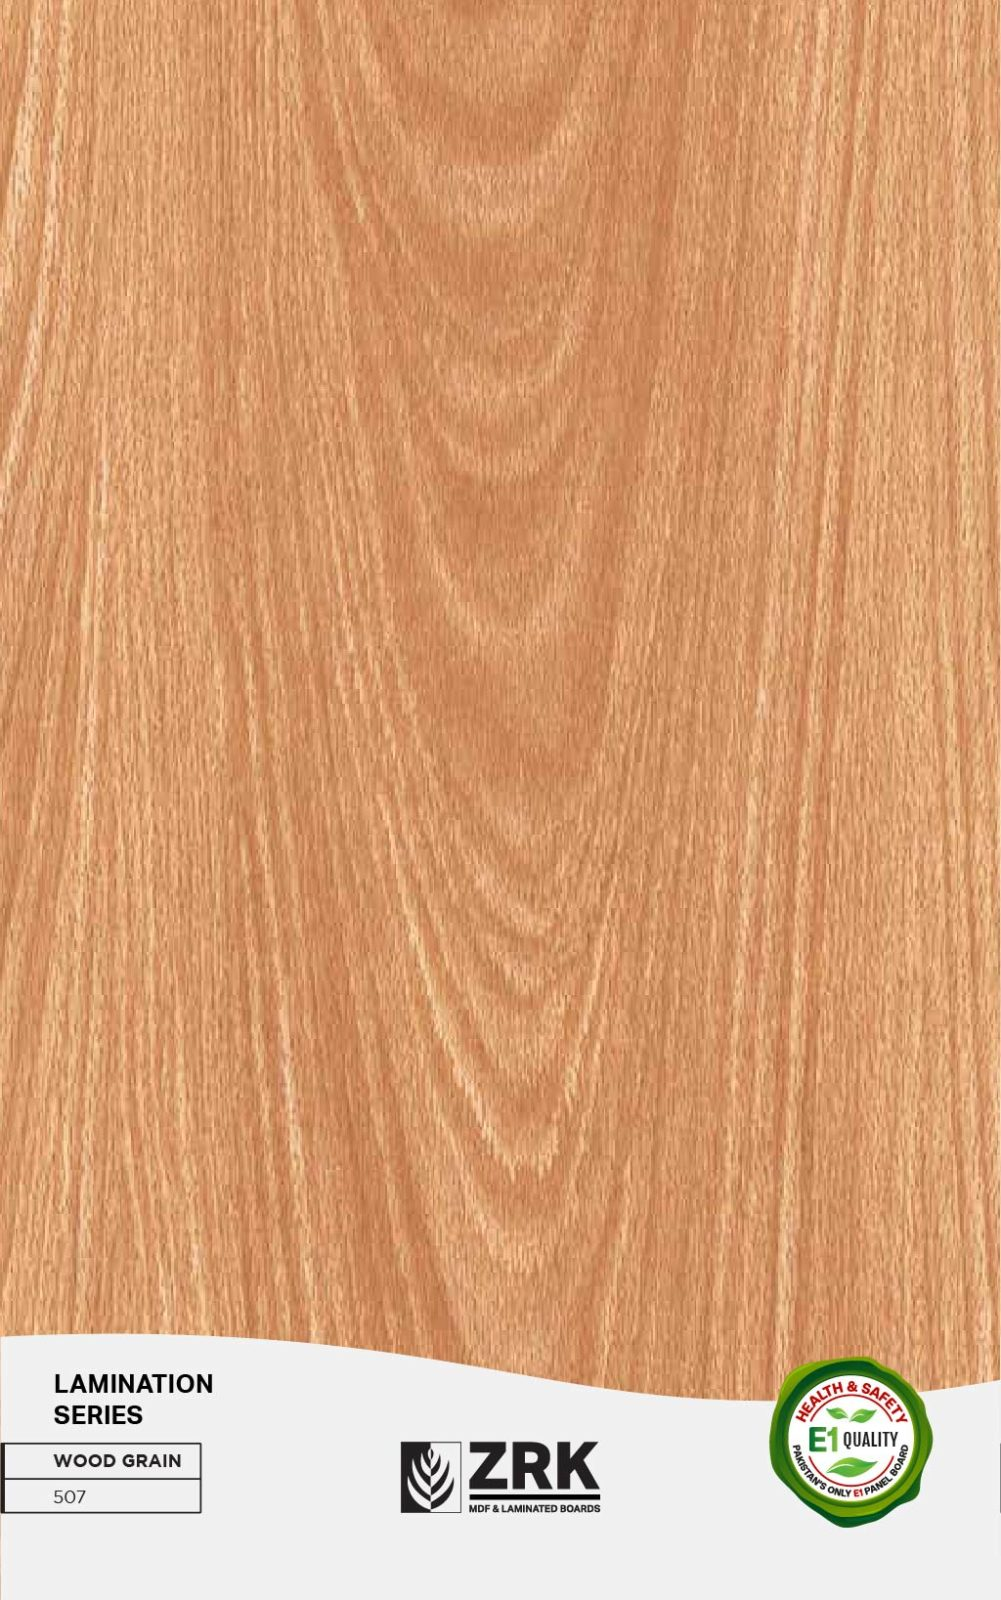 Lamination - Wood Grain - 507